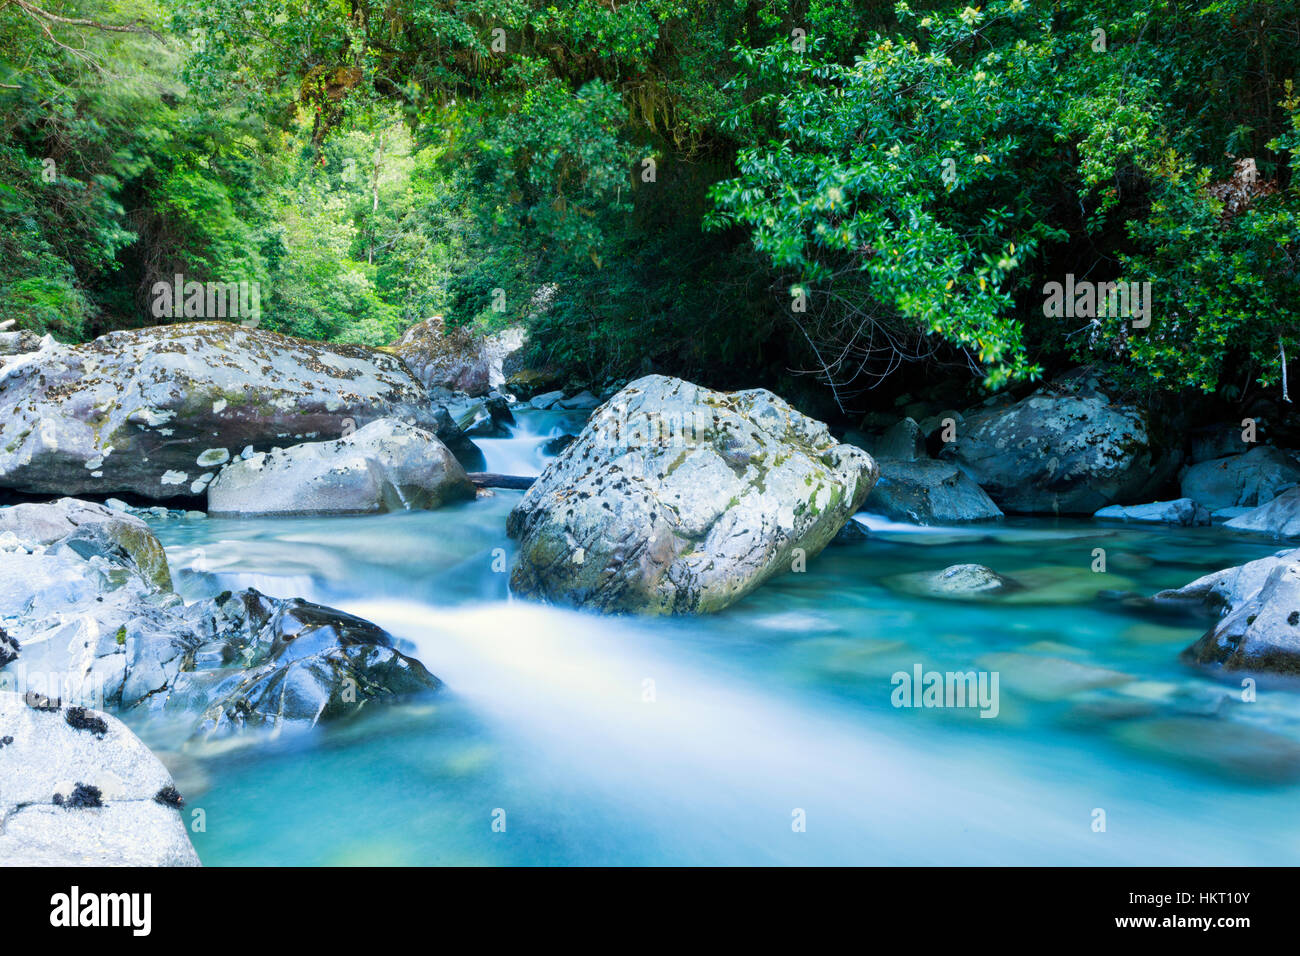 Mountain stream and Valdivian temperate rainforest in the Tagua Tagua reserve in northern Patagonia, Chile - Stock Image